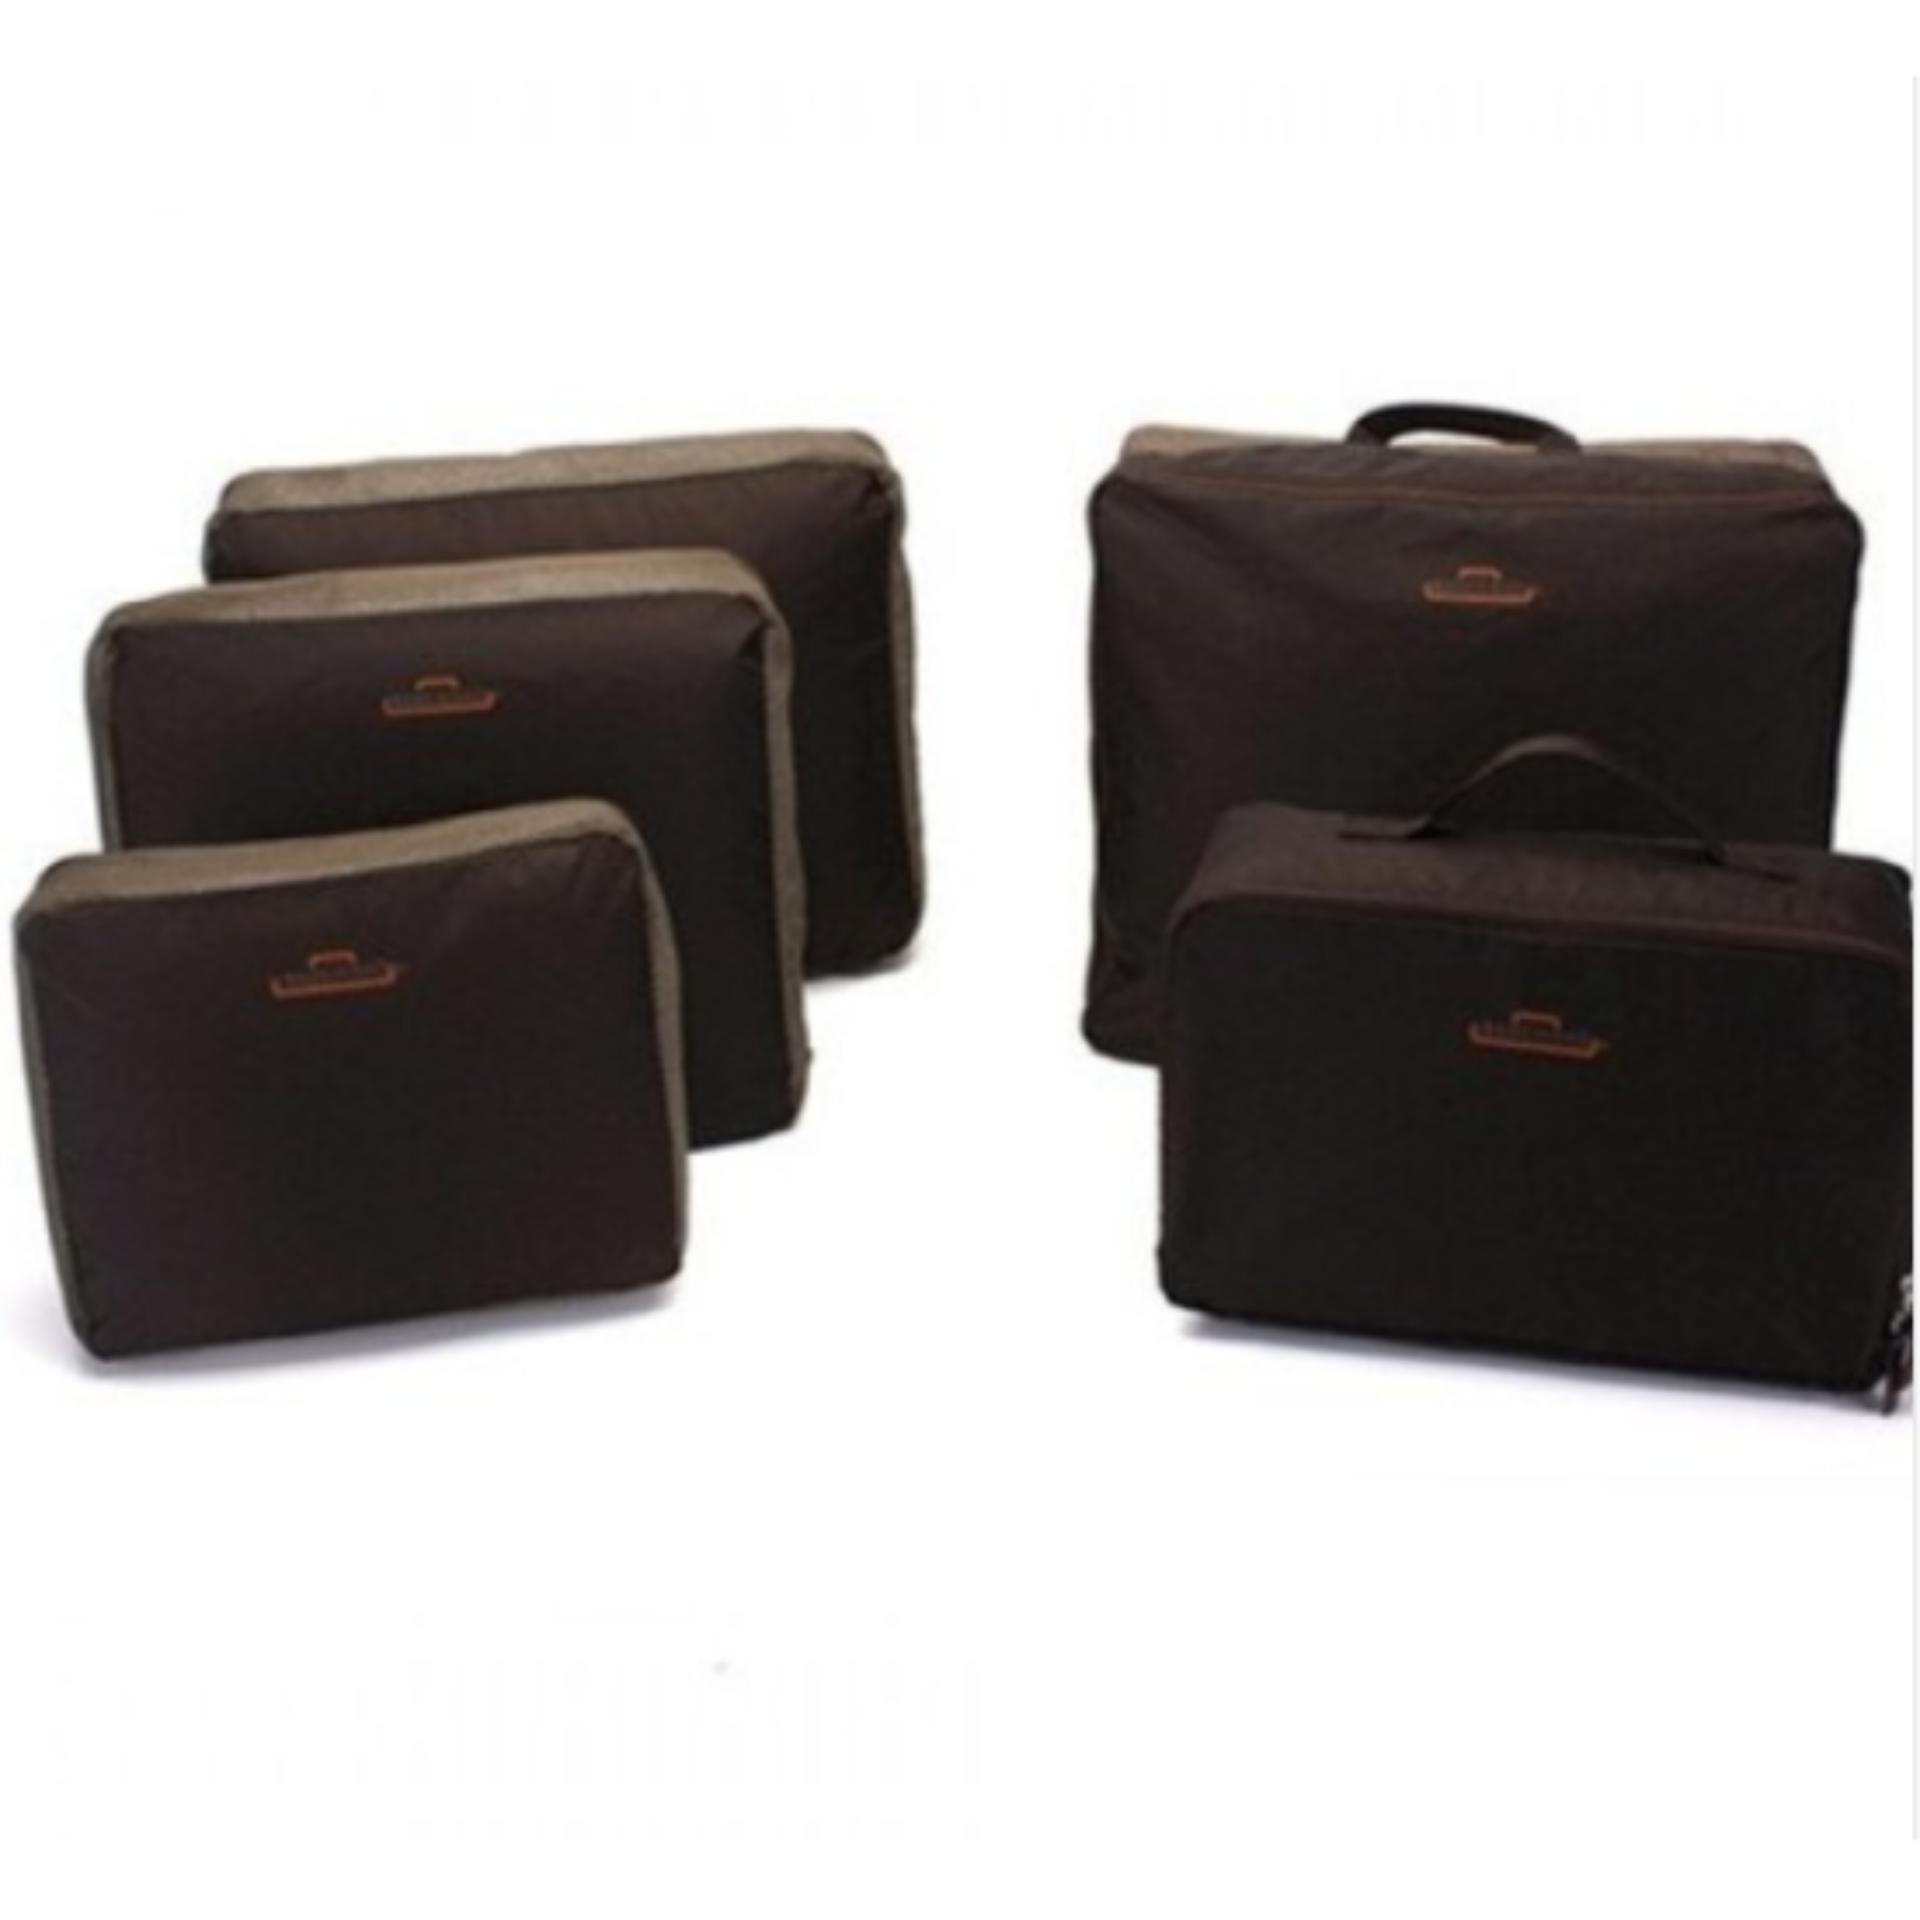 5-Piece Travel Organiser Set